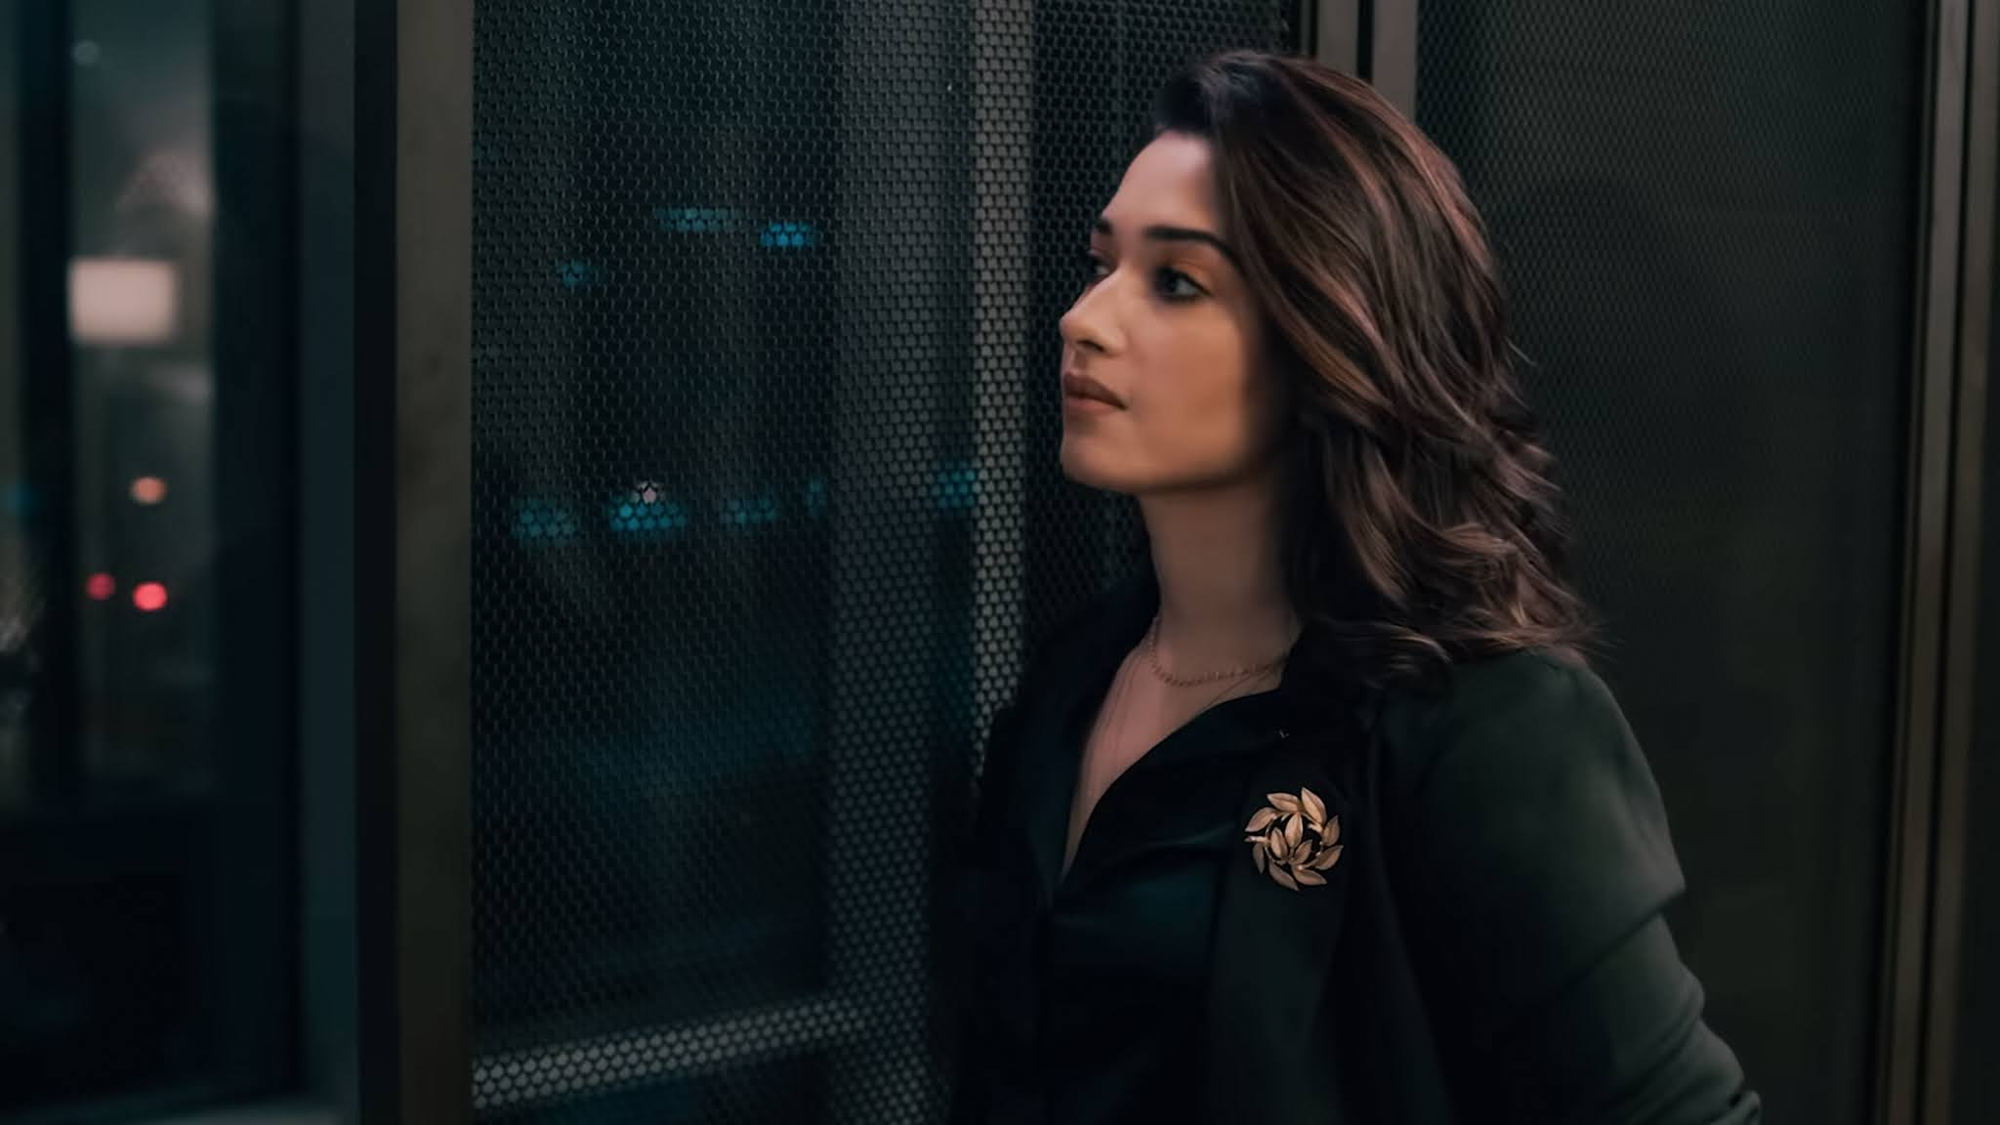 Tamannaah 11th Hour Release Date on April 9th